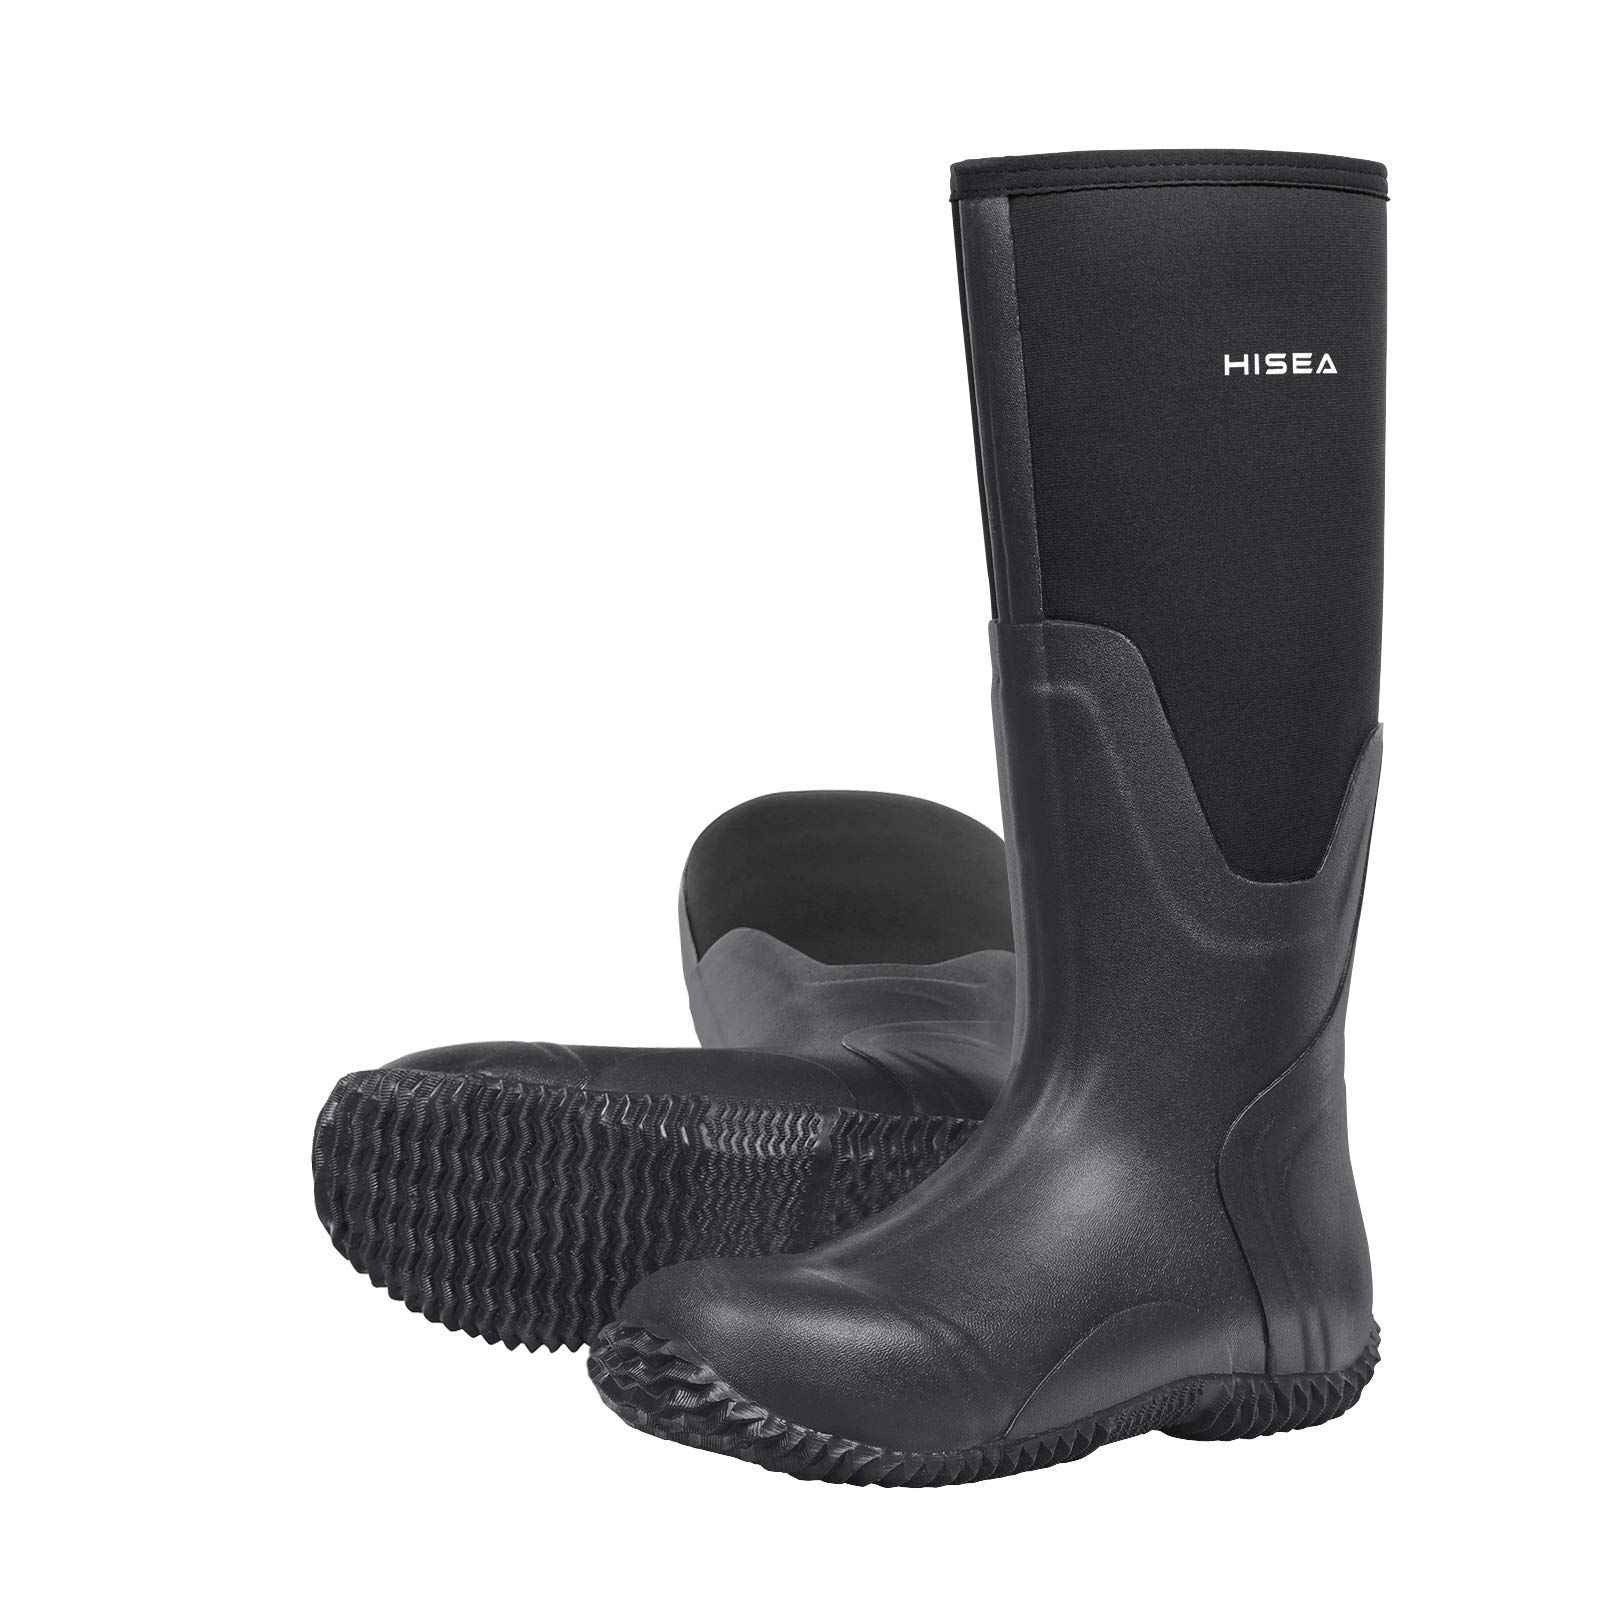 Hisea Mens Insulated Rubber Neoprene Boots Waterproof Durable Insulated Outdoor Winter Snow Rain Boots Hunting Arctic Boot Black Size 6 by Hisea (Image #1)